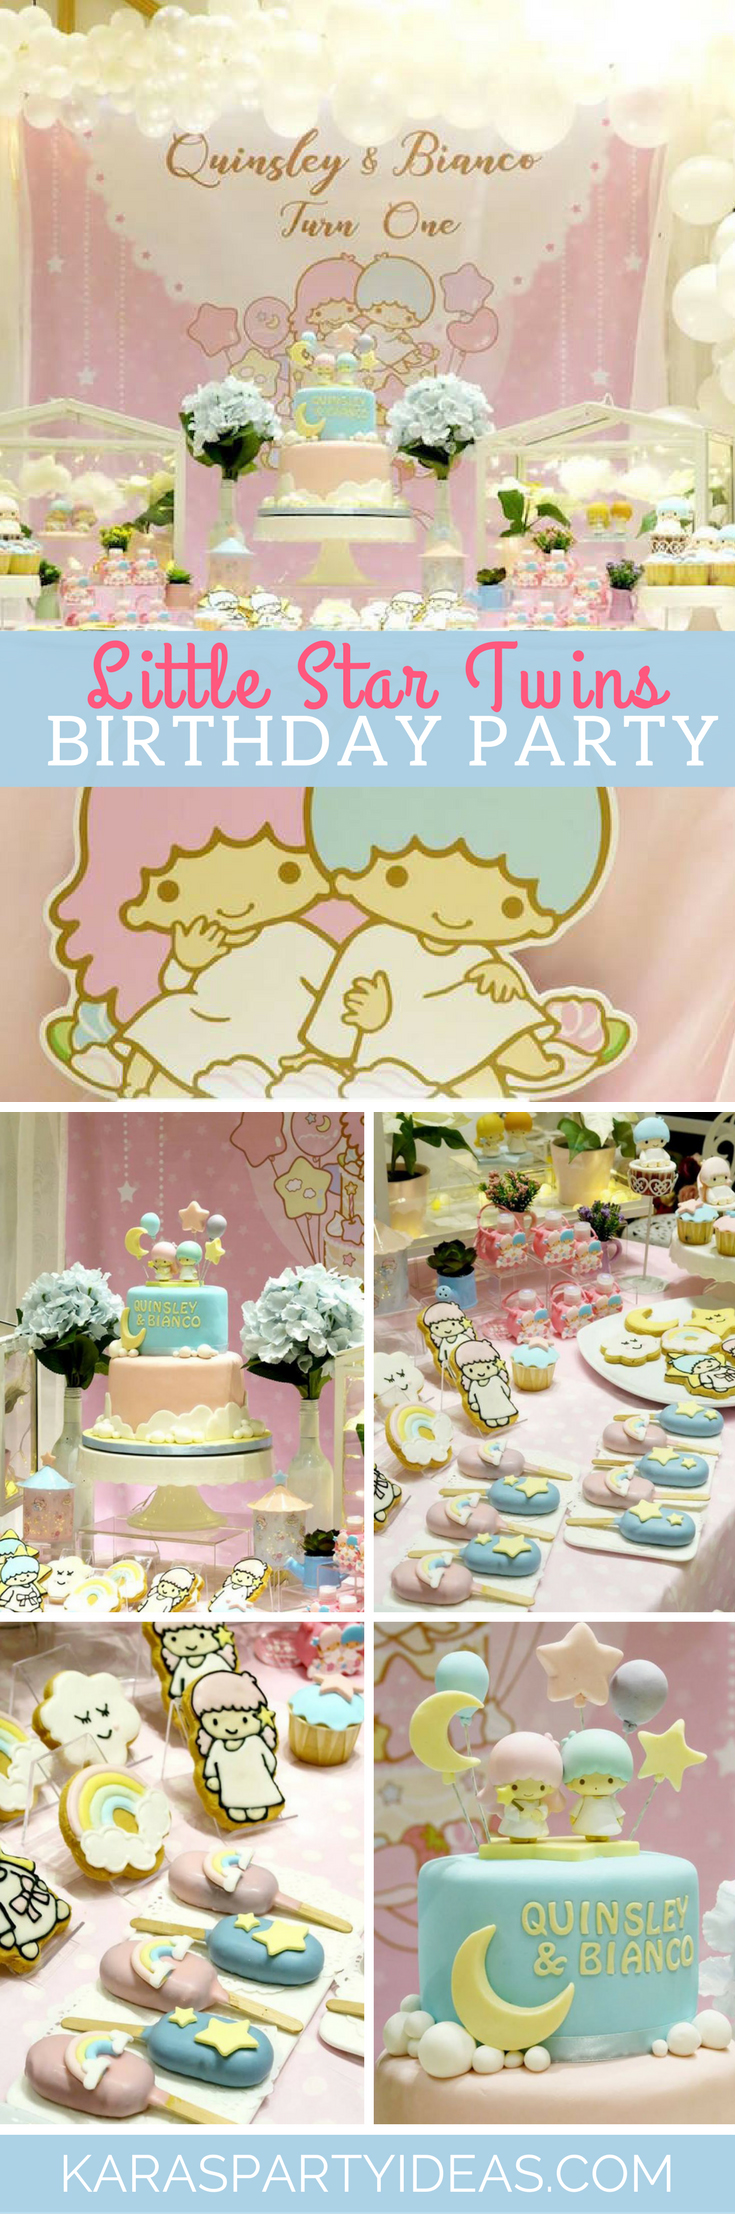 Little Star Twins Birthday Party via Kara's Party Ideas - KarasPartyIdeas.com